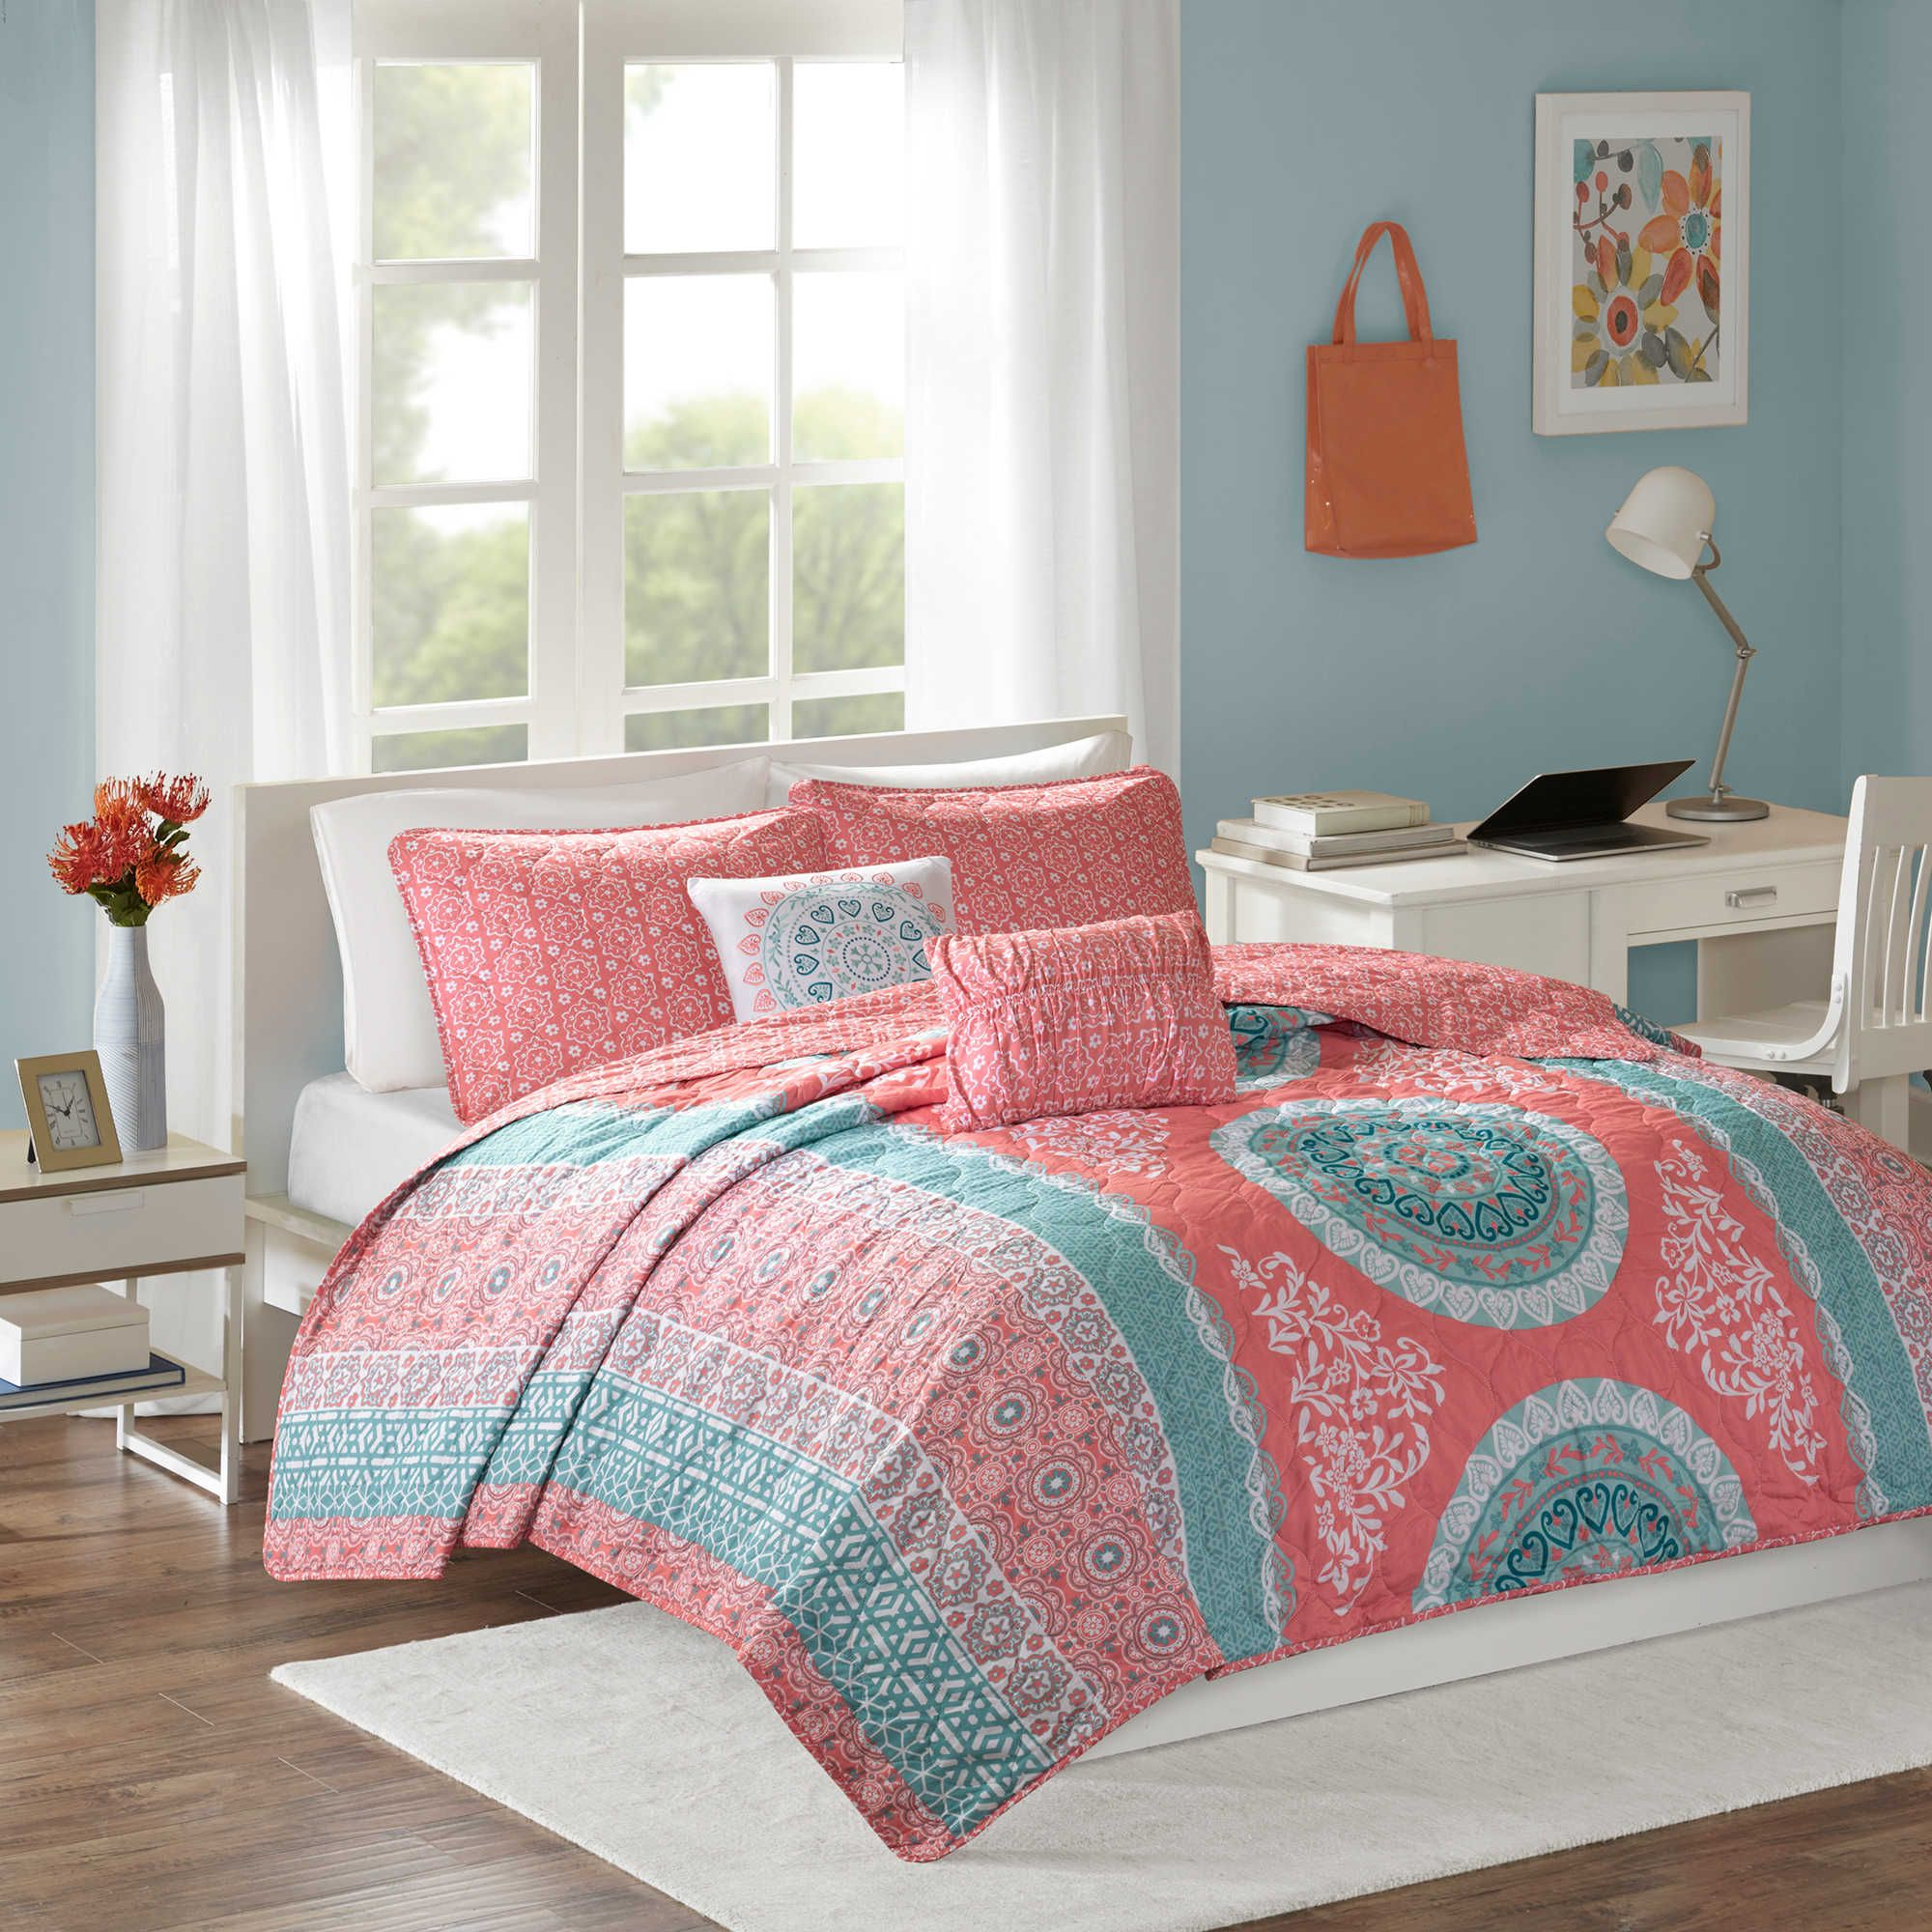 Intelligent Design Loretta 4 Piece Coverlet Set In Coral